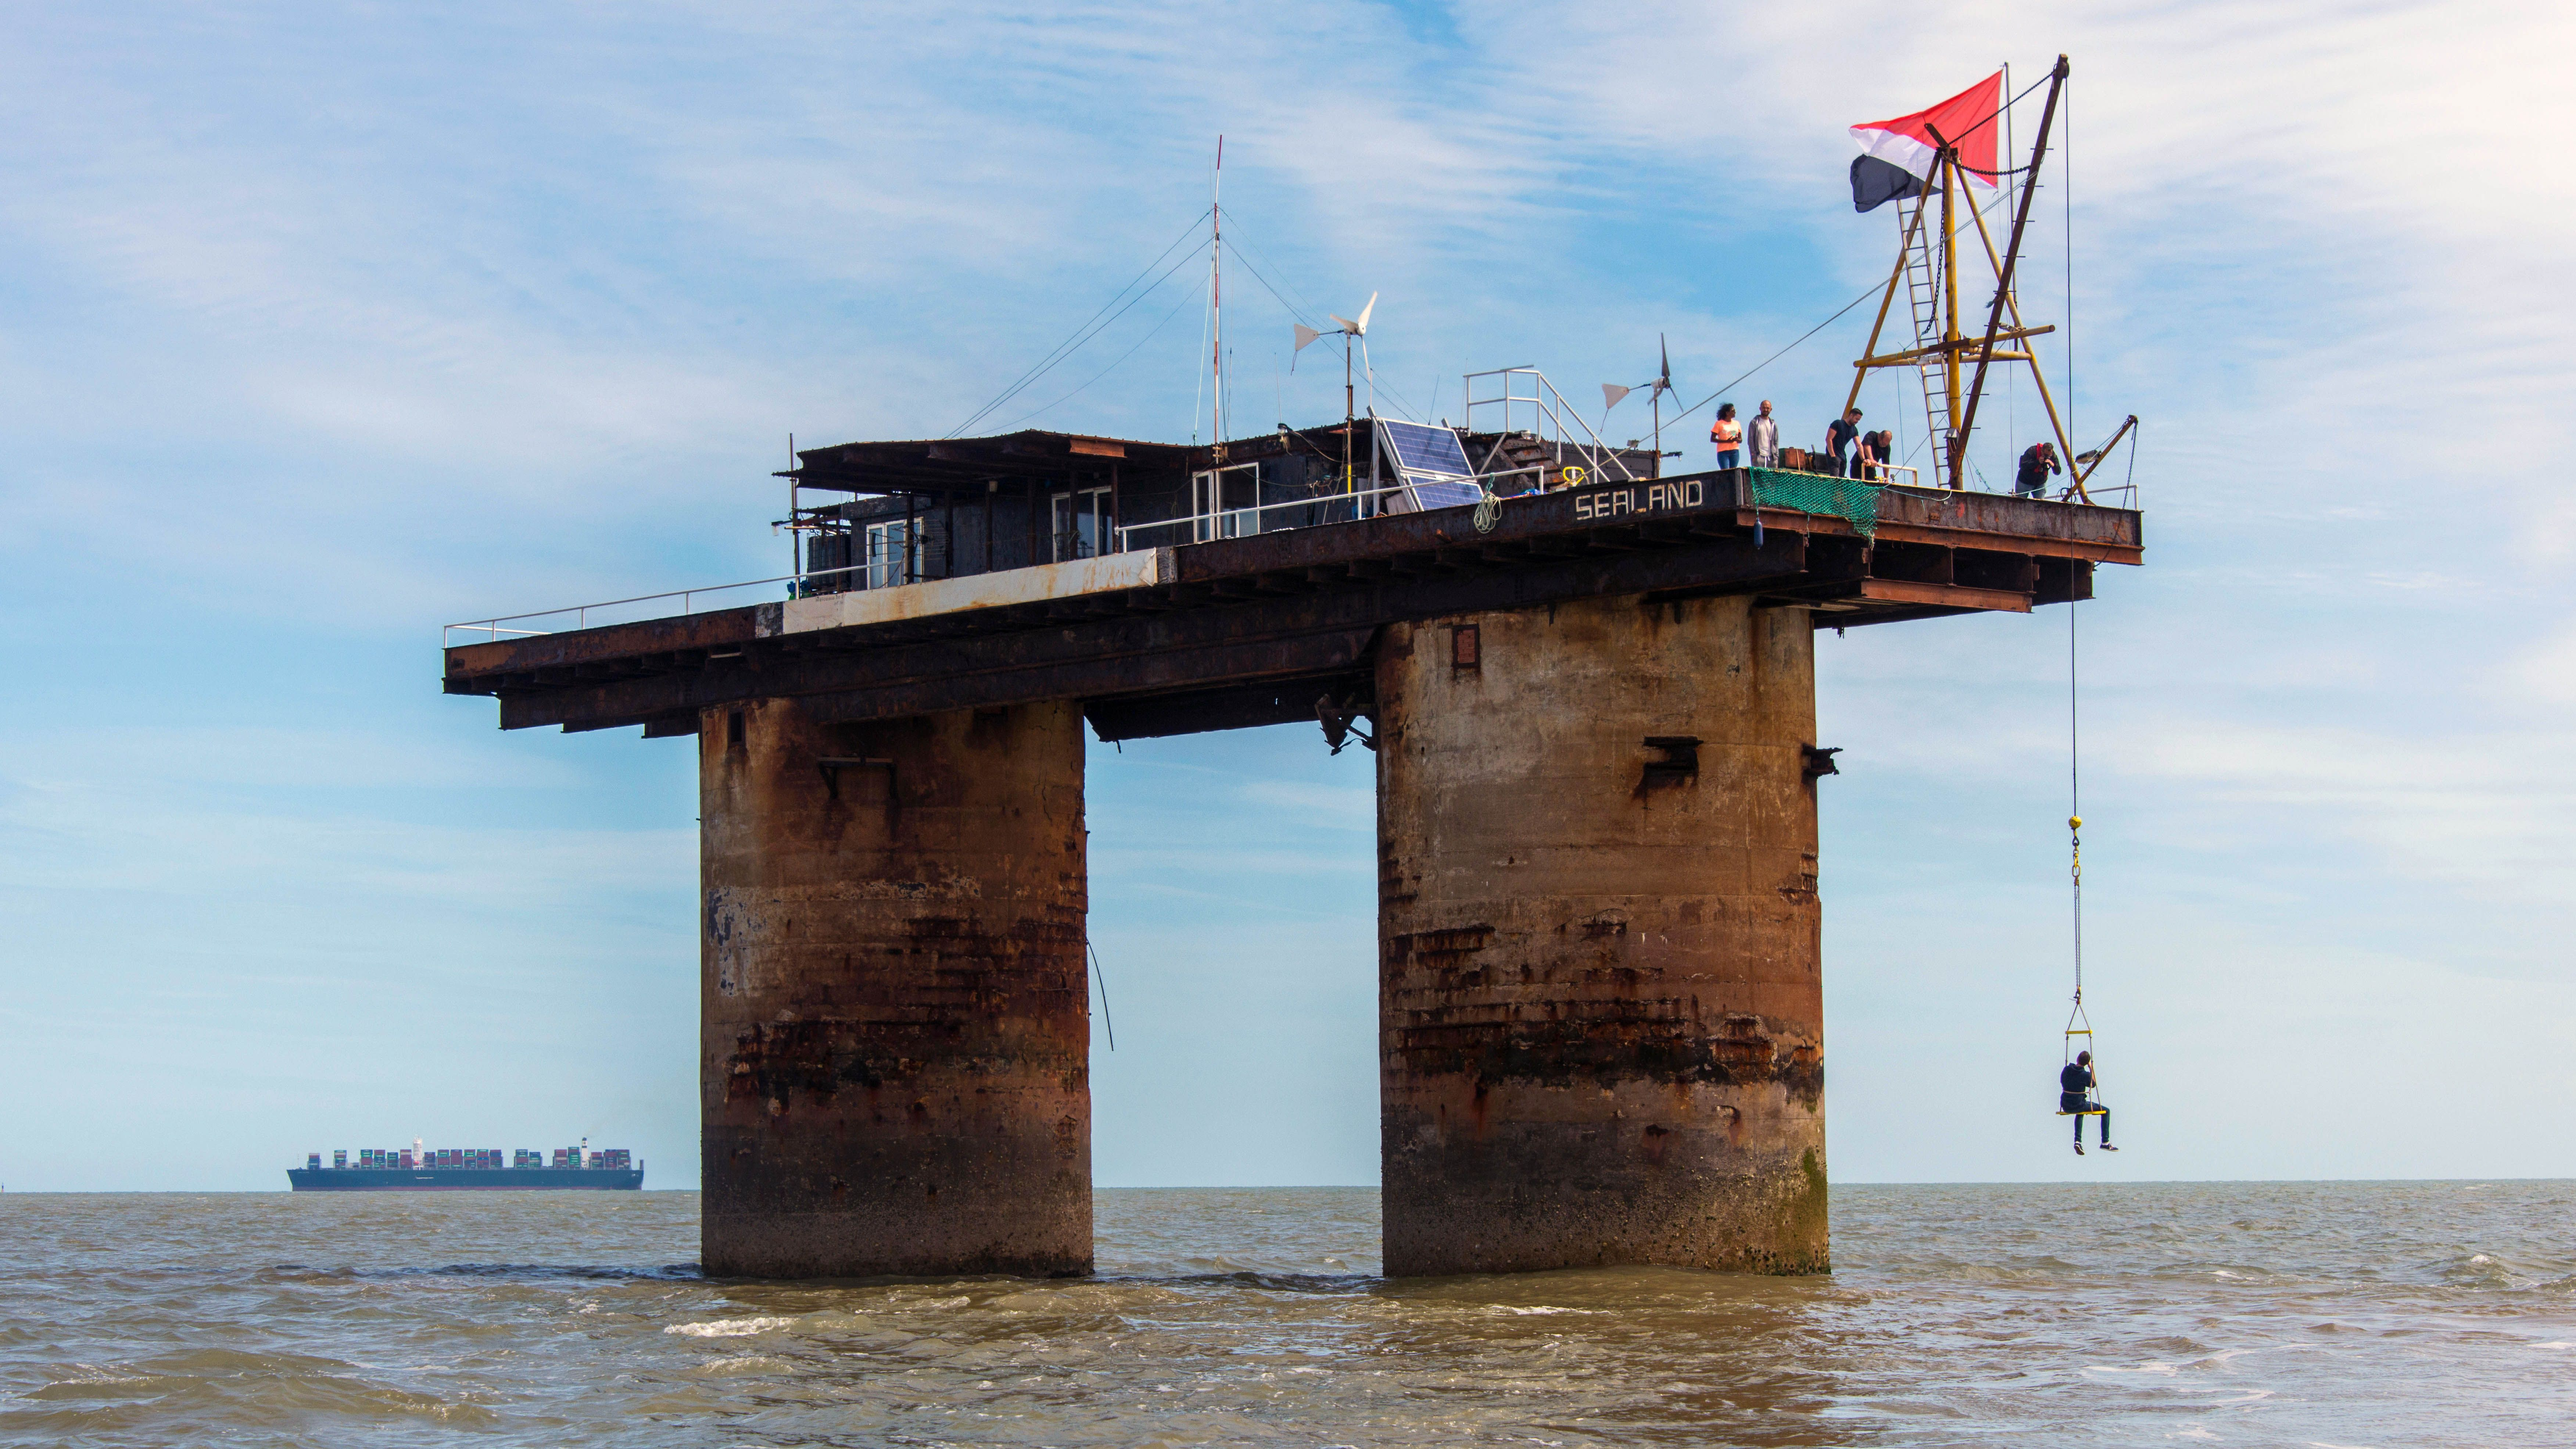 Sealand was founded as a sovereign principality in 1967 in international waters (Credit: Robert Harding/Alamy)